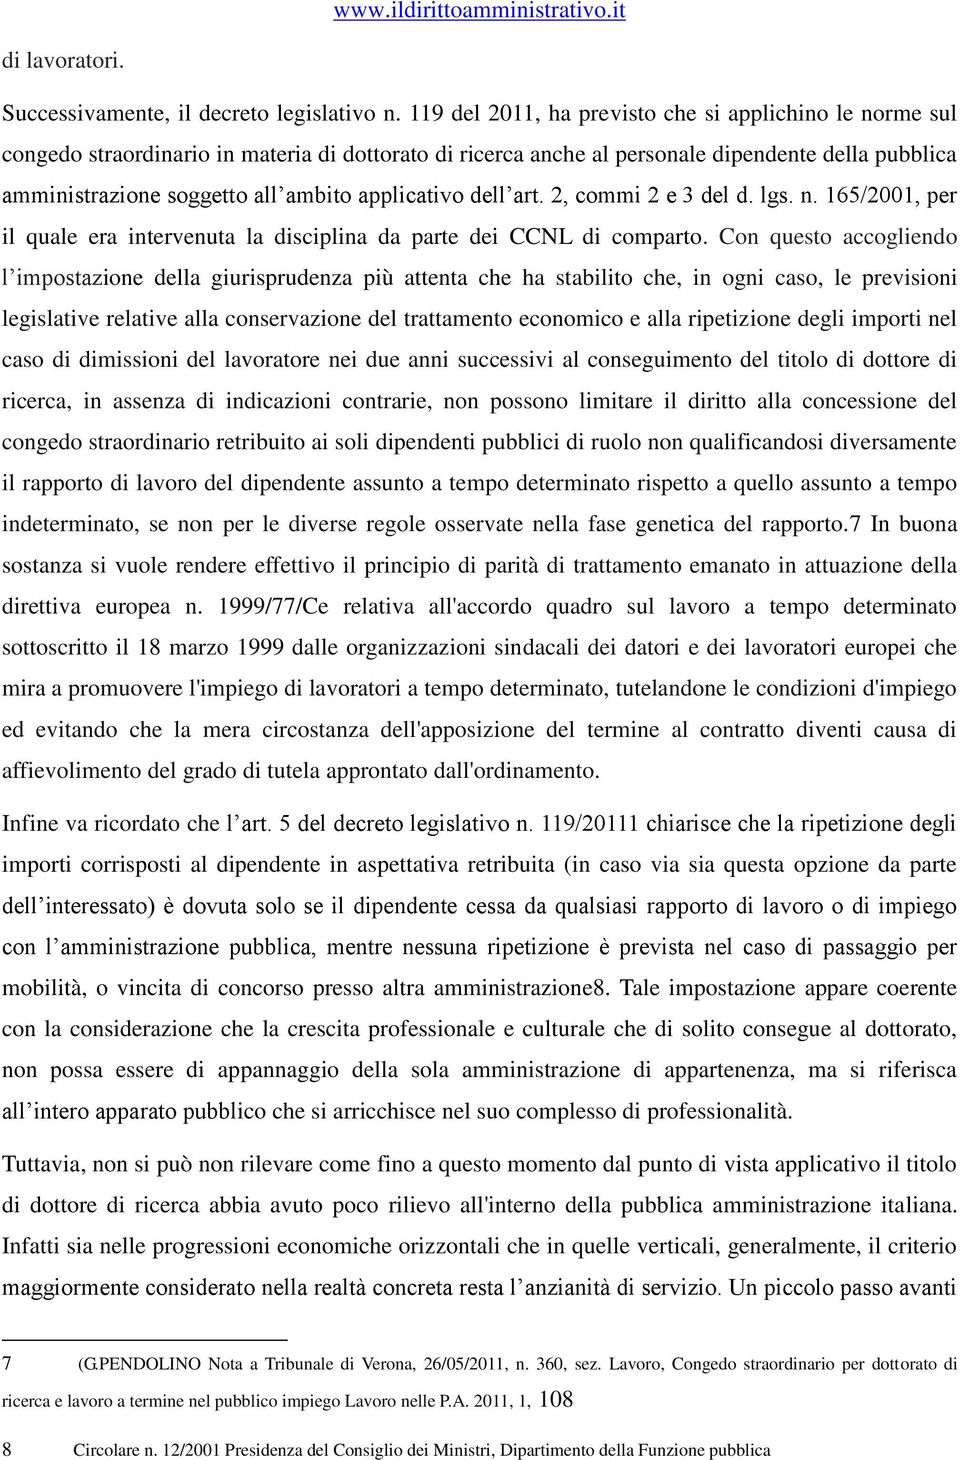 applicativo dell art. 2, commi 2 e 3 del d. lgs. n. 165/2001, per il quale era intervenuta la disciplina da parte dei CCNL di comparto.